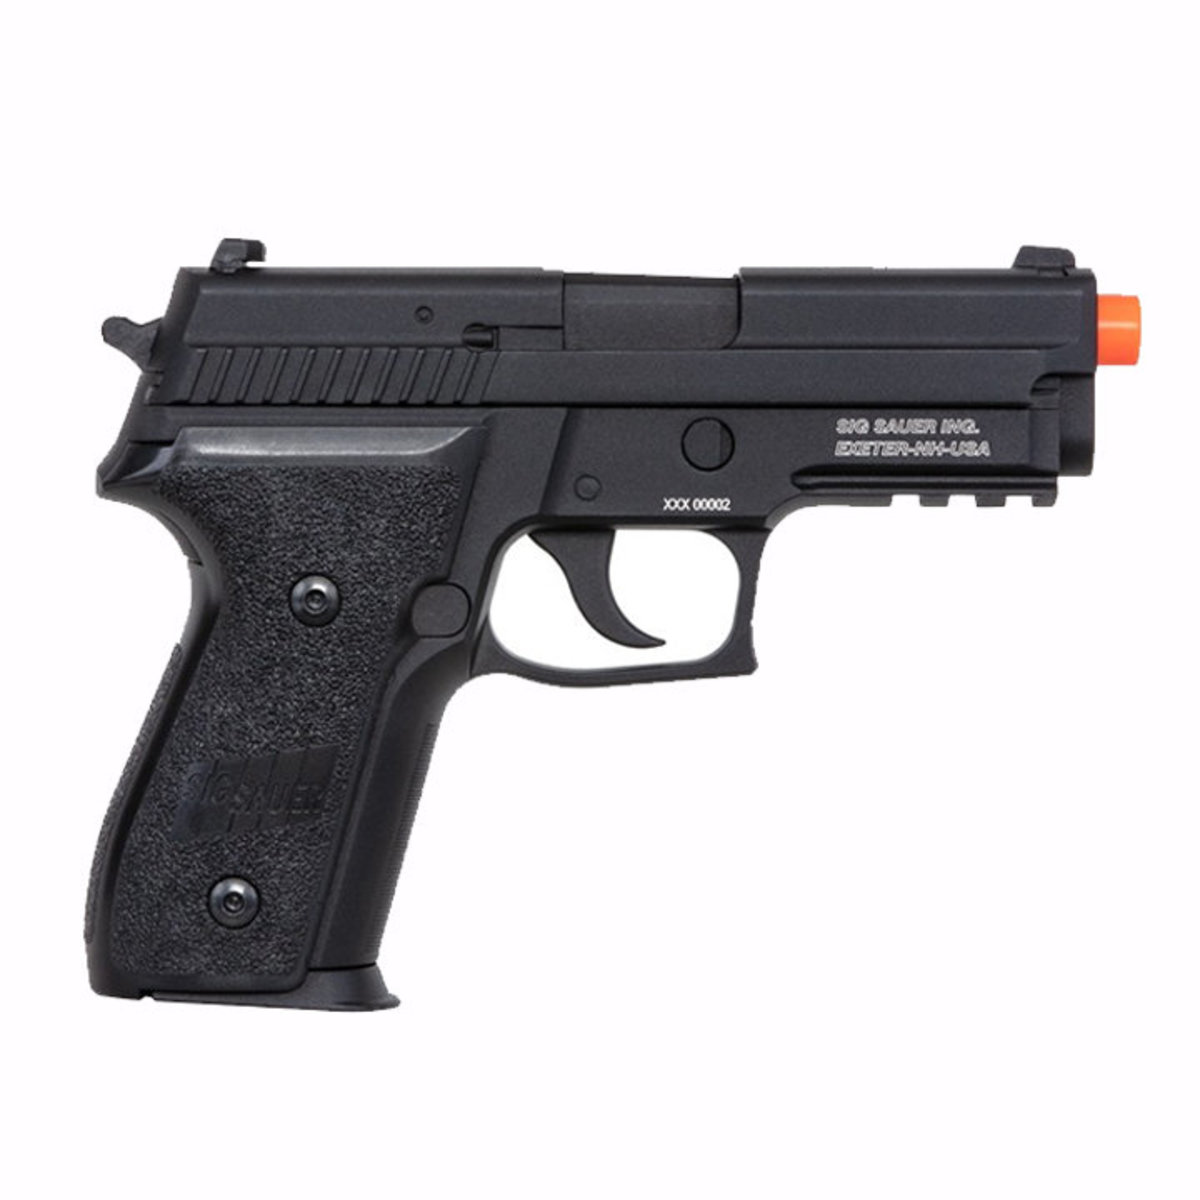 View larger image of Sig Sauer ProForce P229 GBB Airsoft Pistol